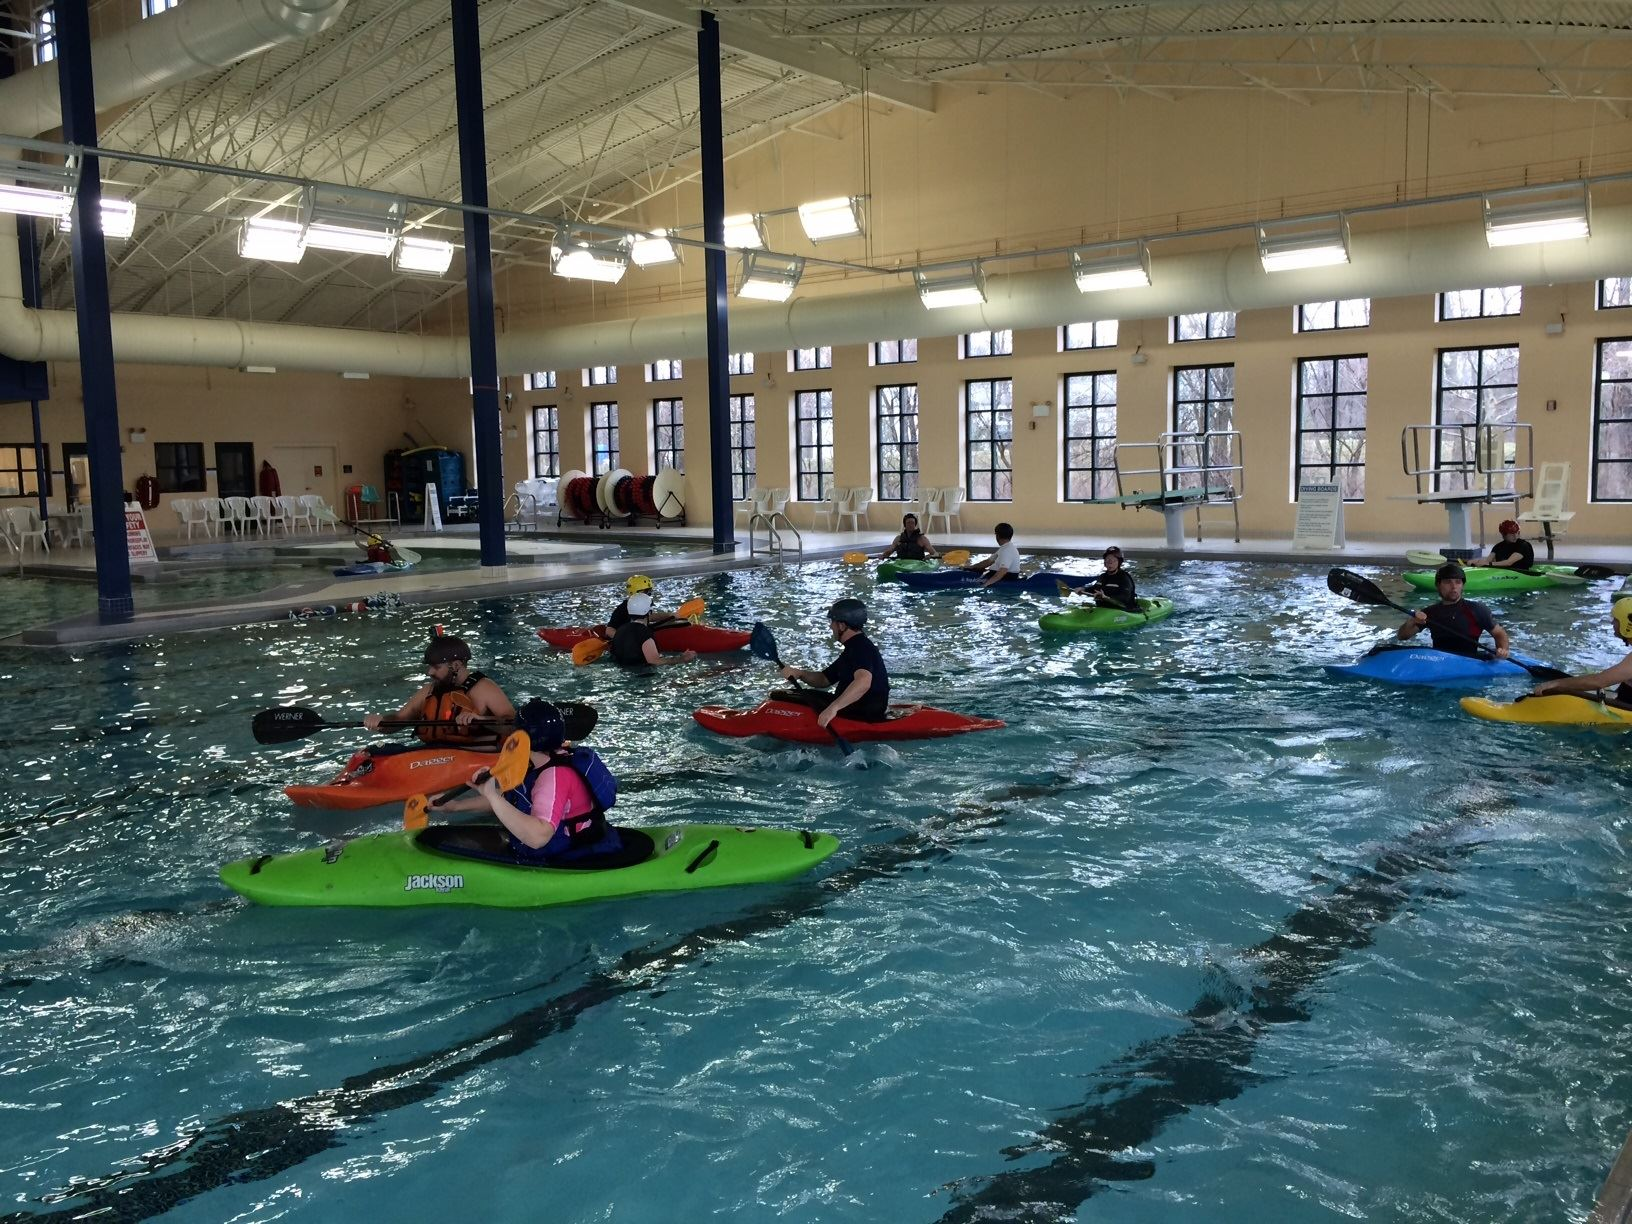 Kayaking Class in the Recreation Center's indoor pool